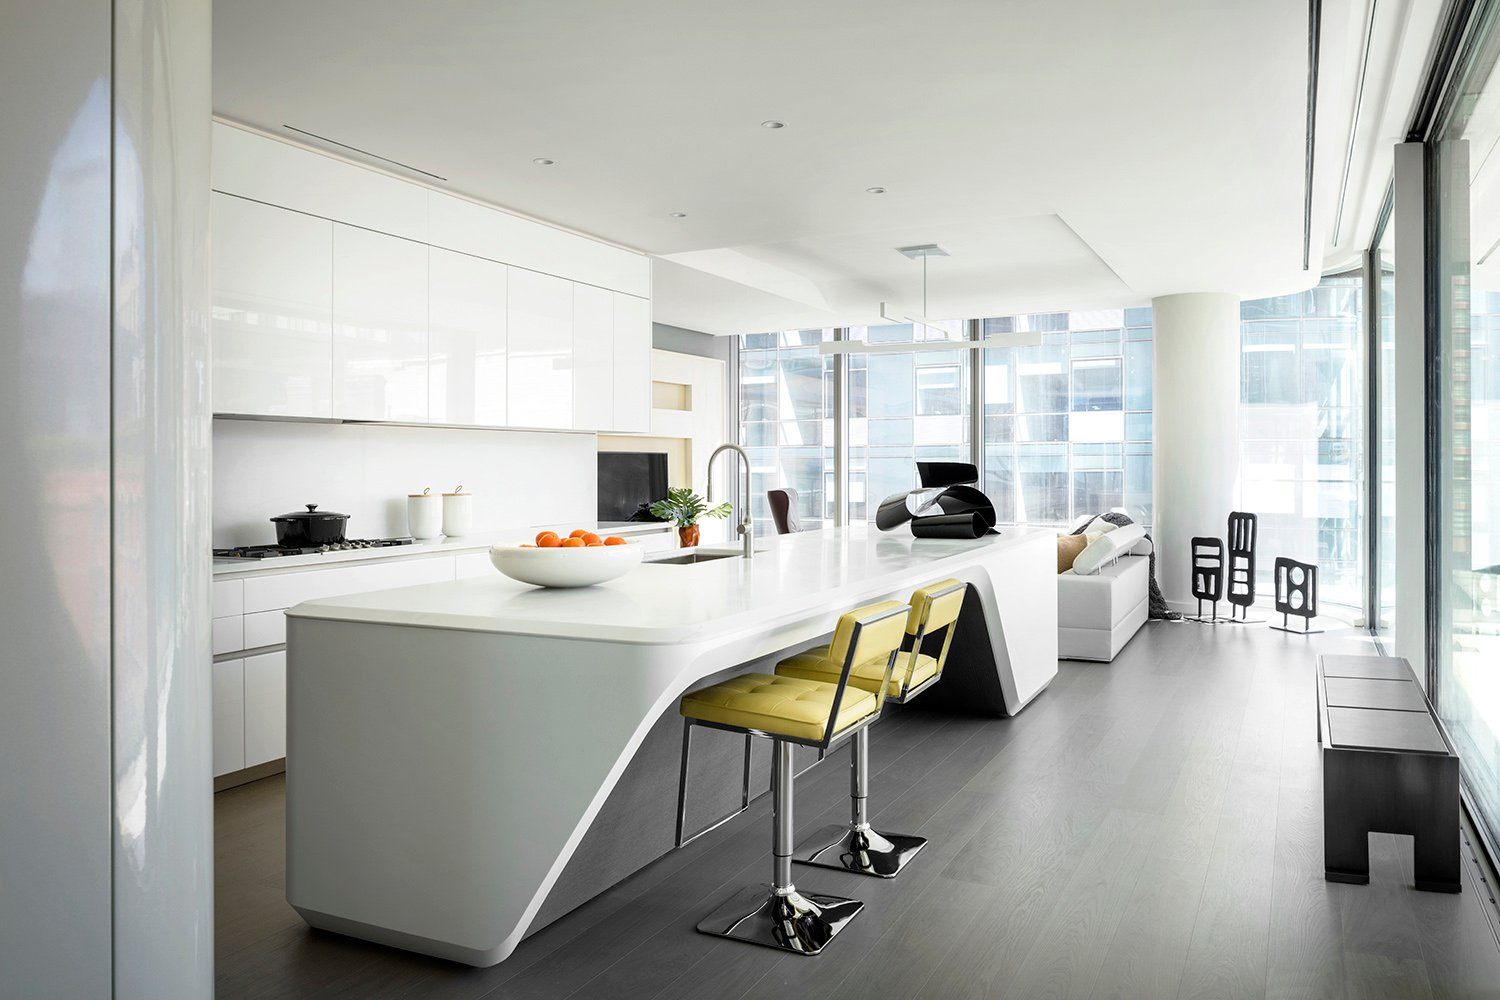 Interior View Apartment Photograph by Scott Francis